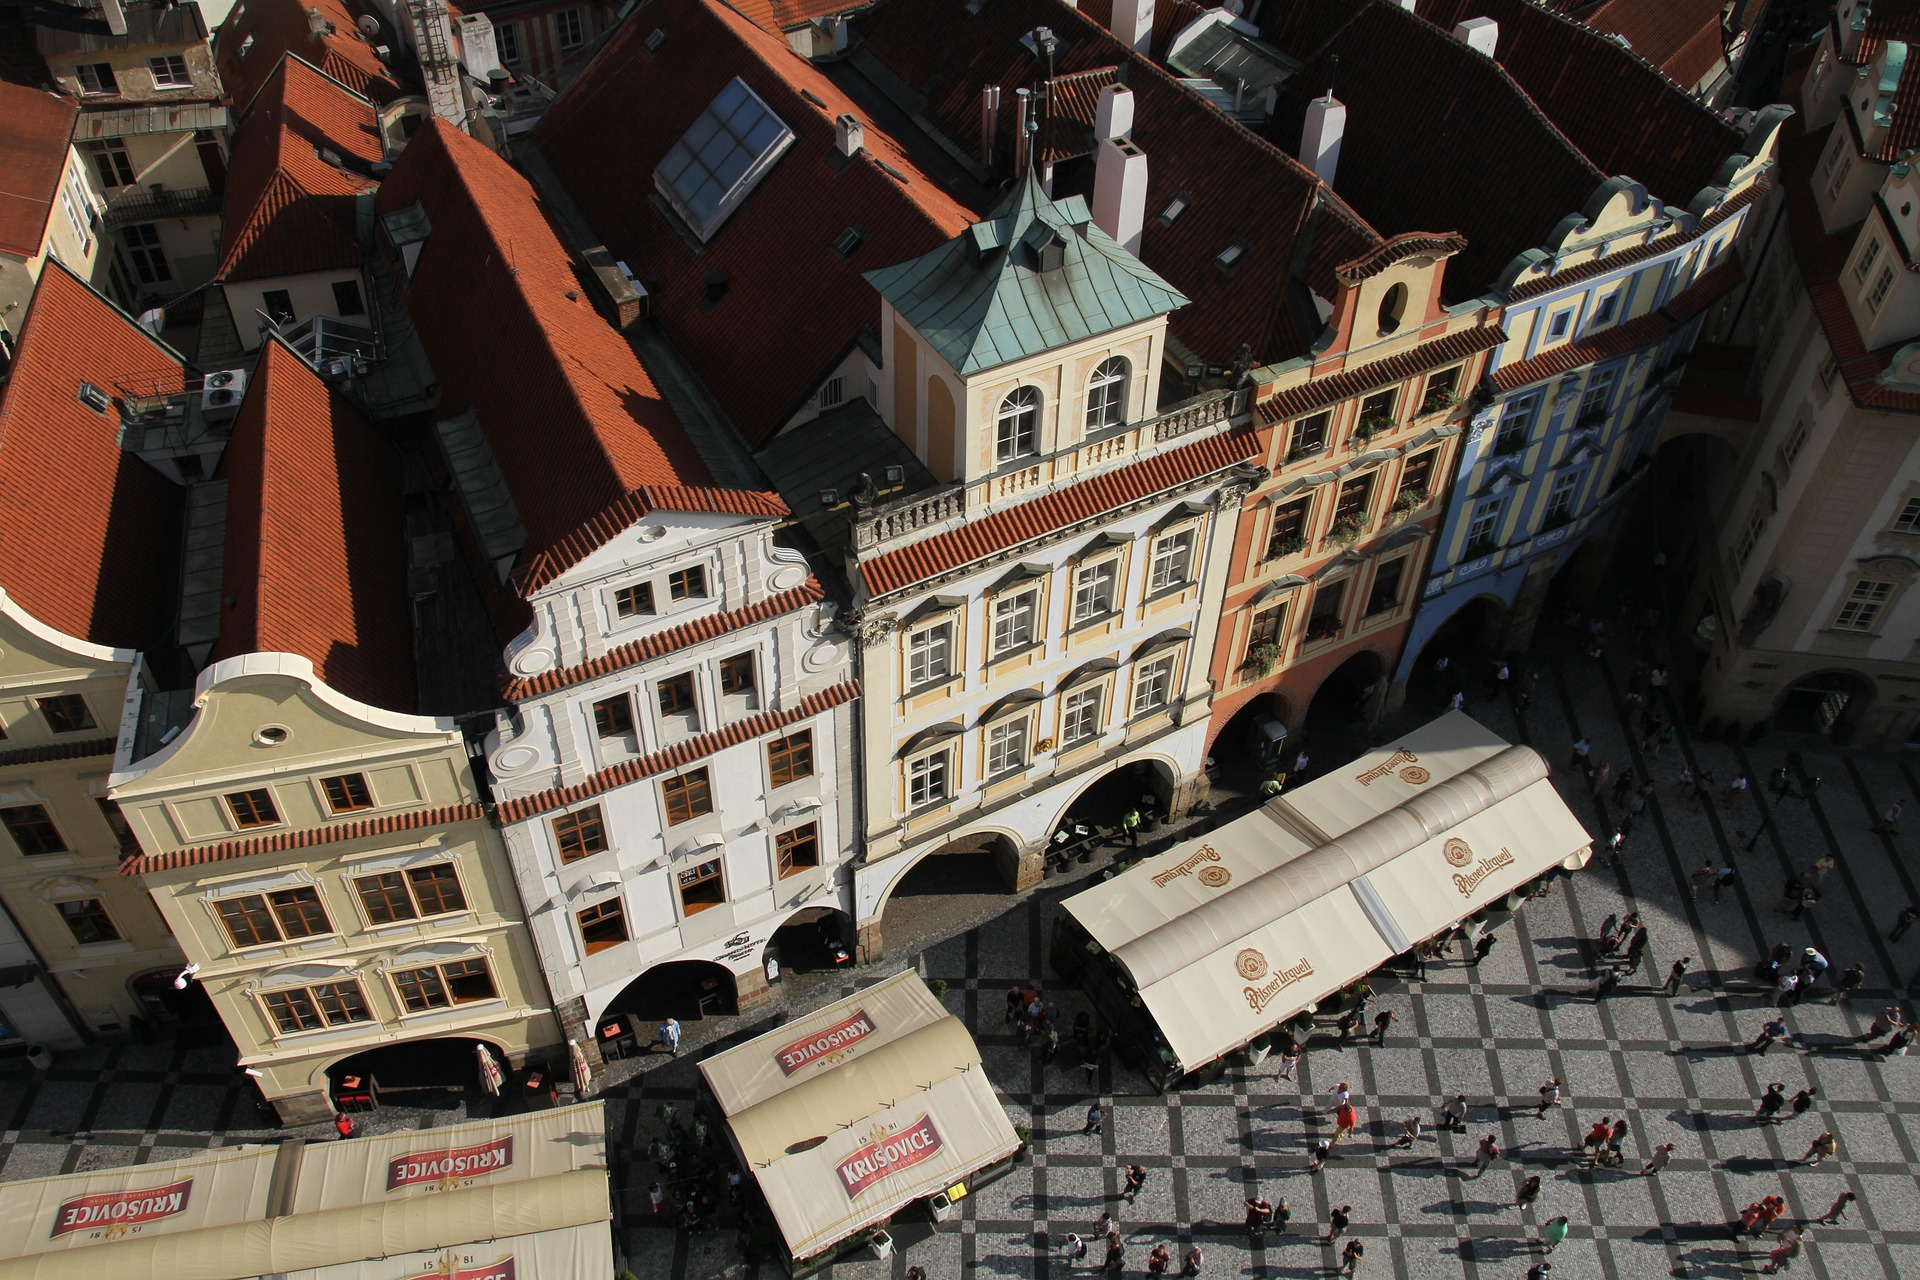 Prague Buildings viewed from Above